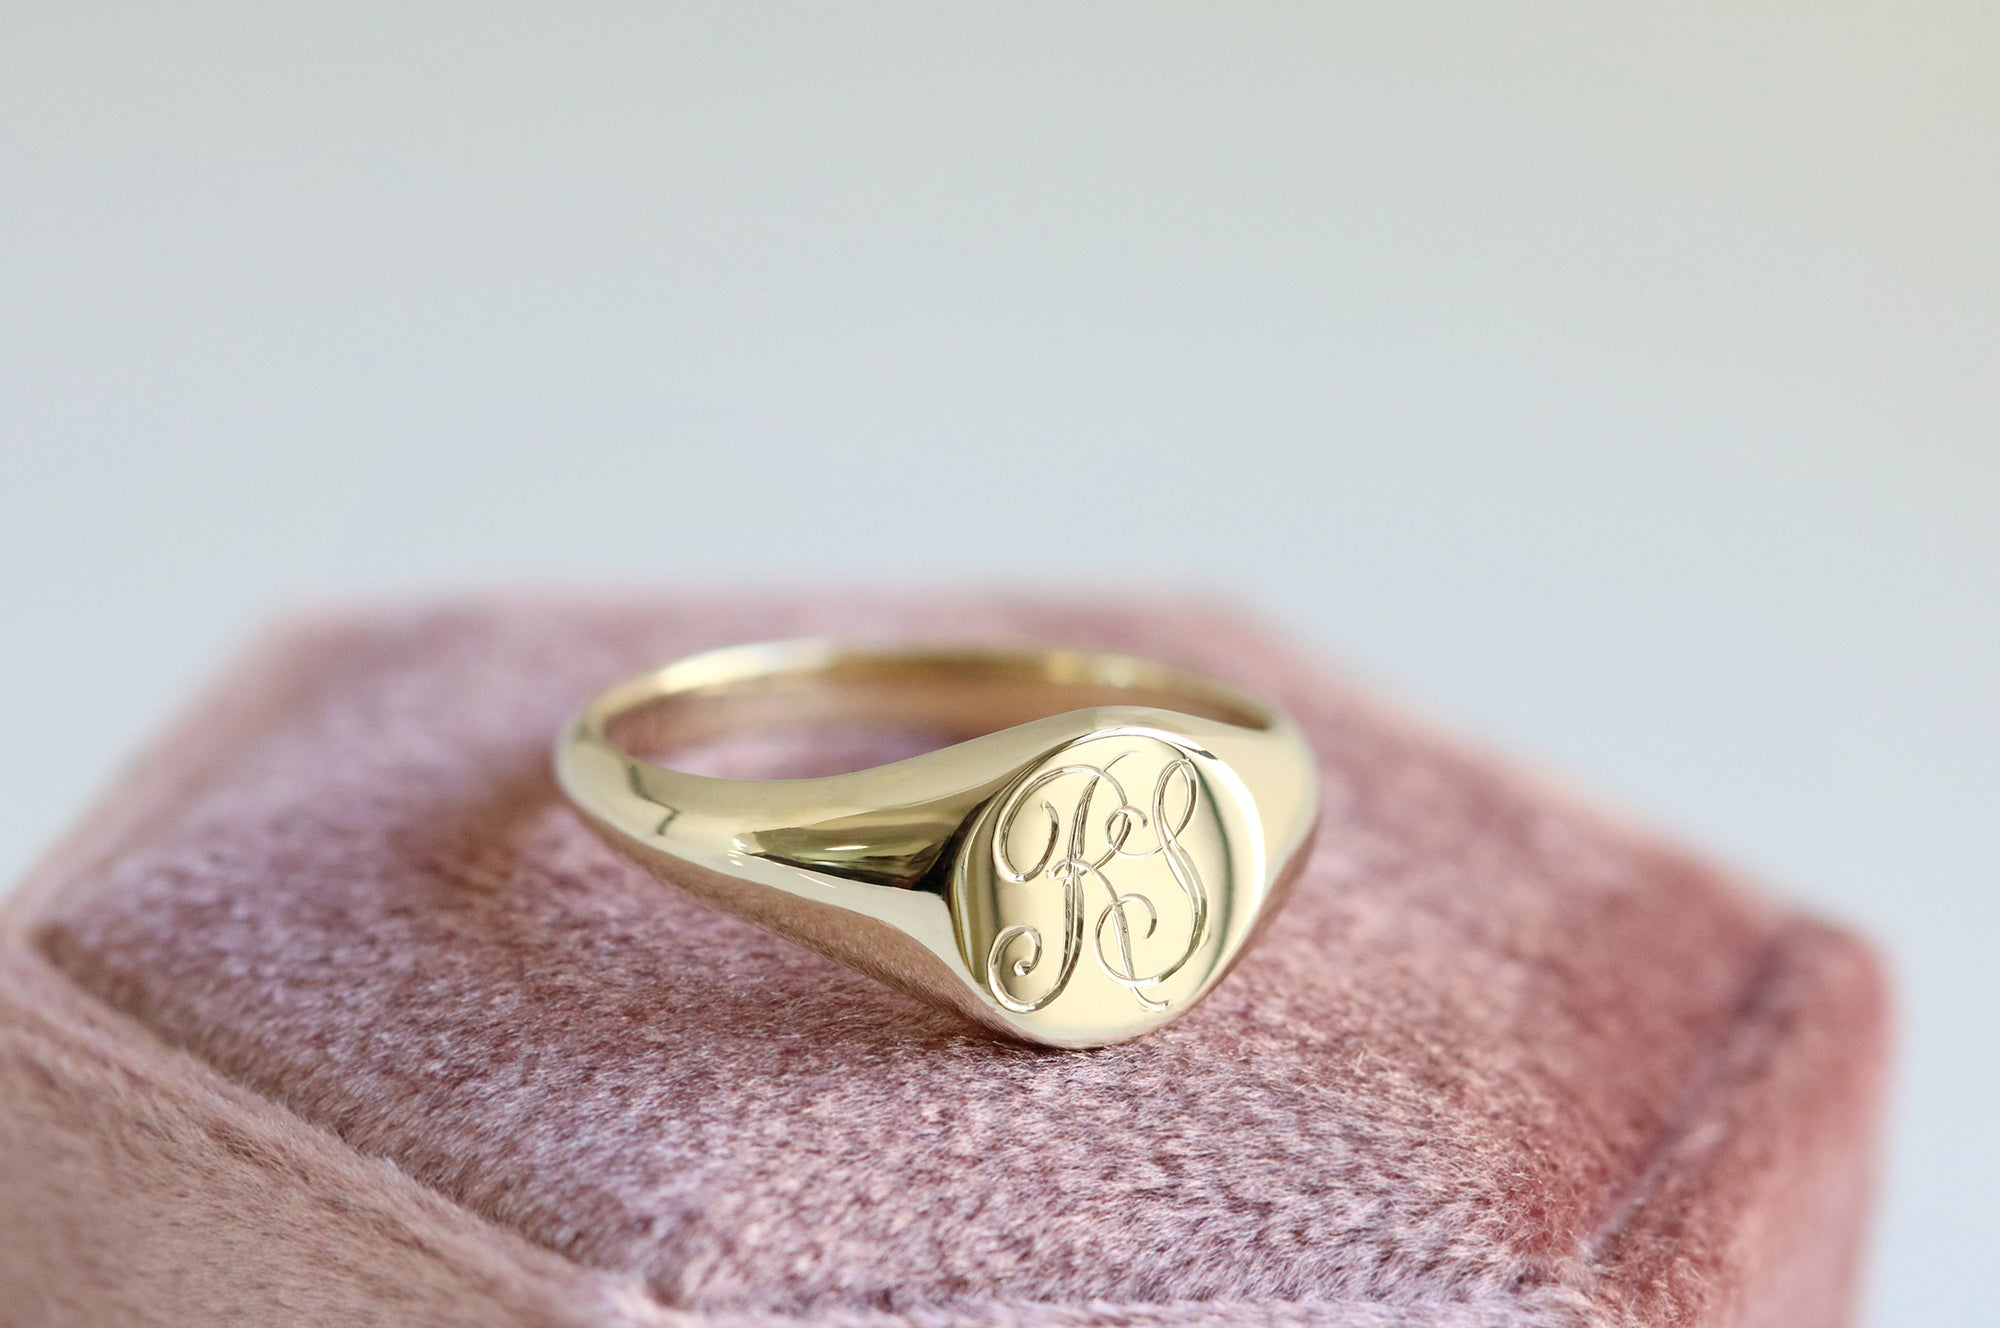 engraved initial signet ring in yellow gold